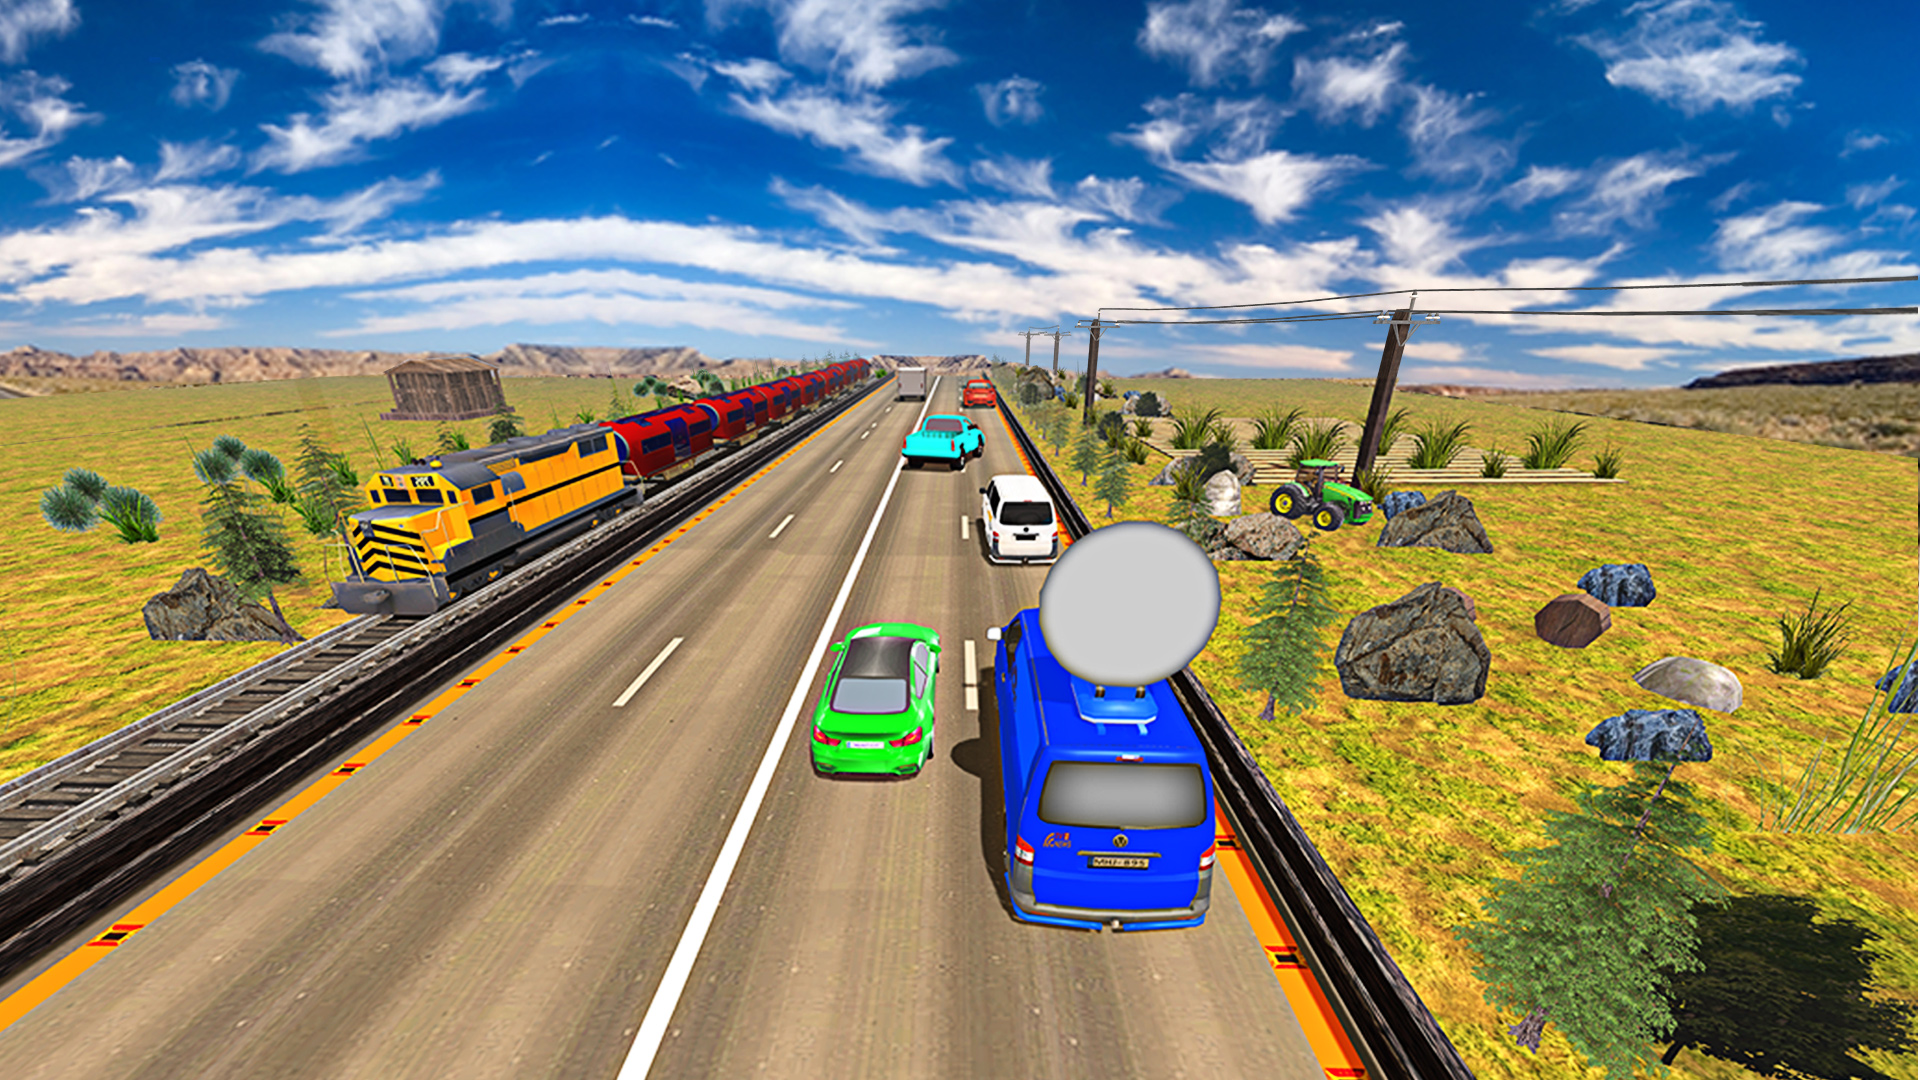 Amazon.com: Turbo Traffic Racing simulator 3D - Racing game: Appstore for Android